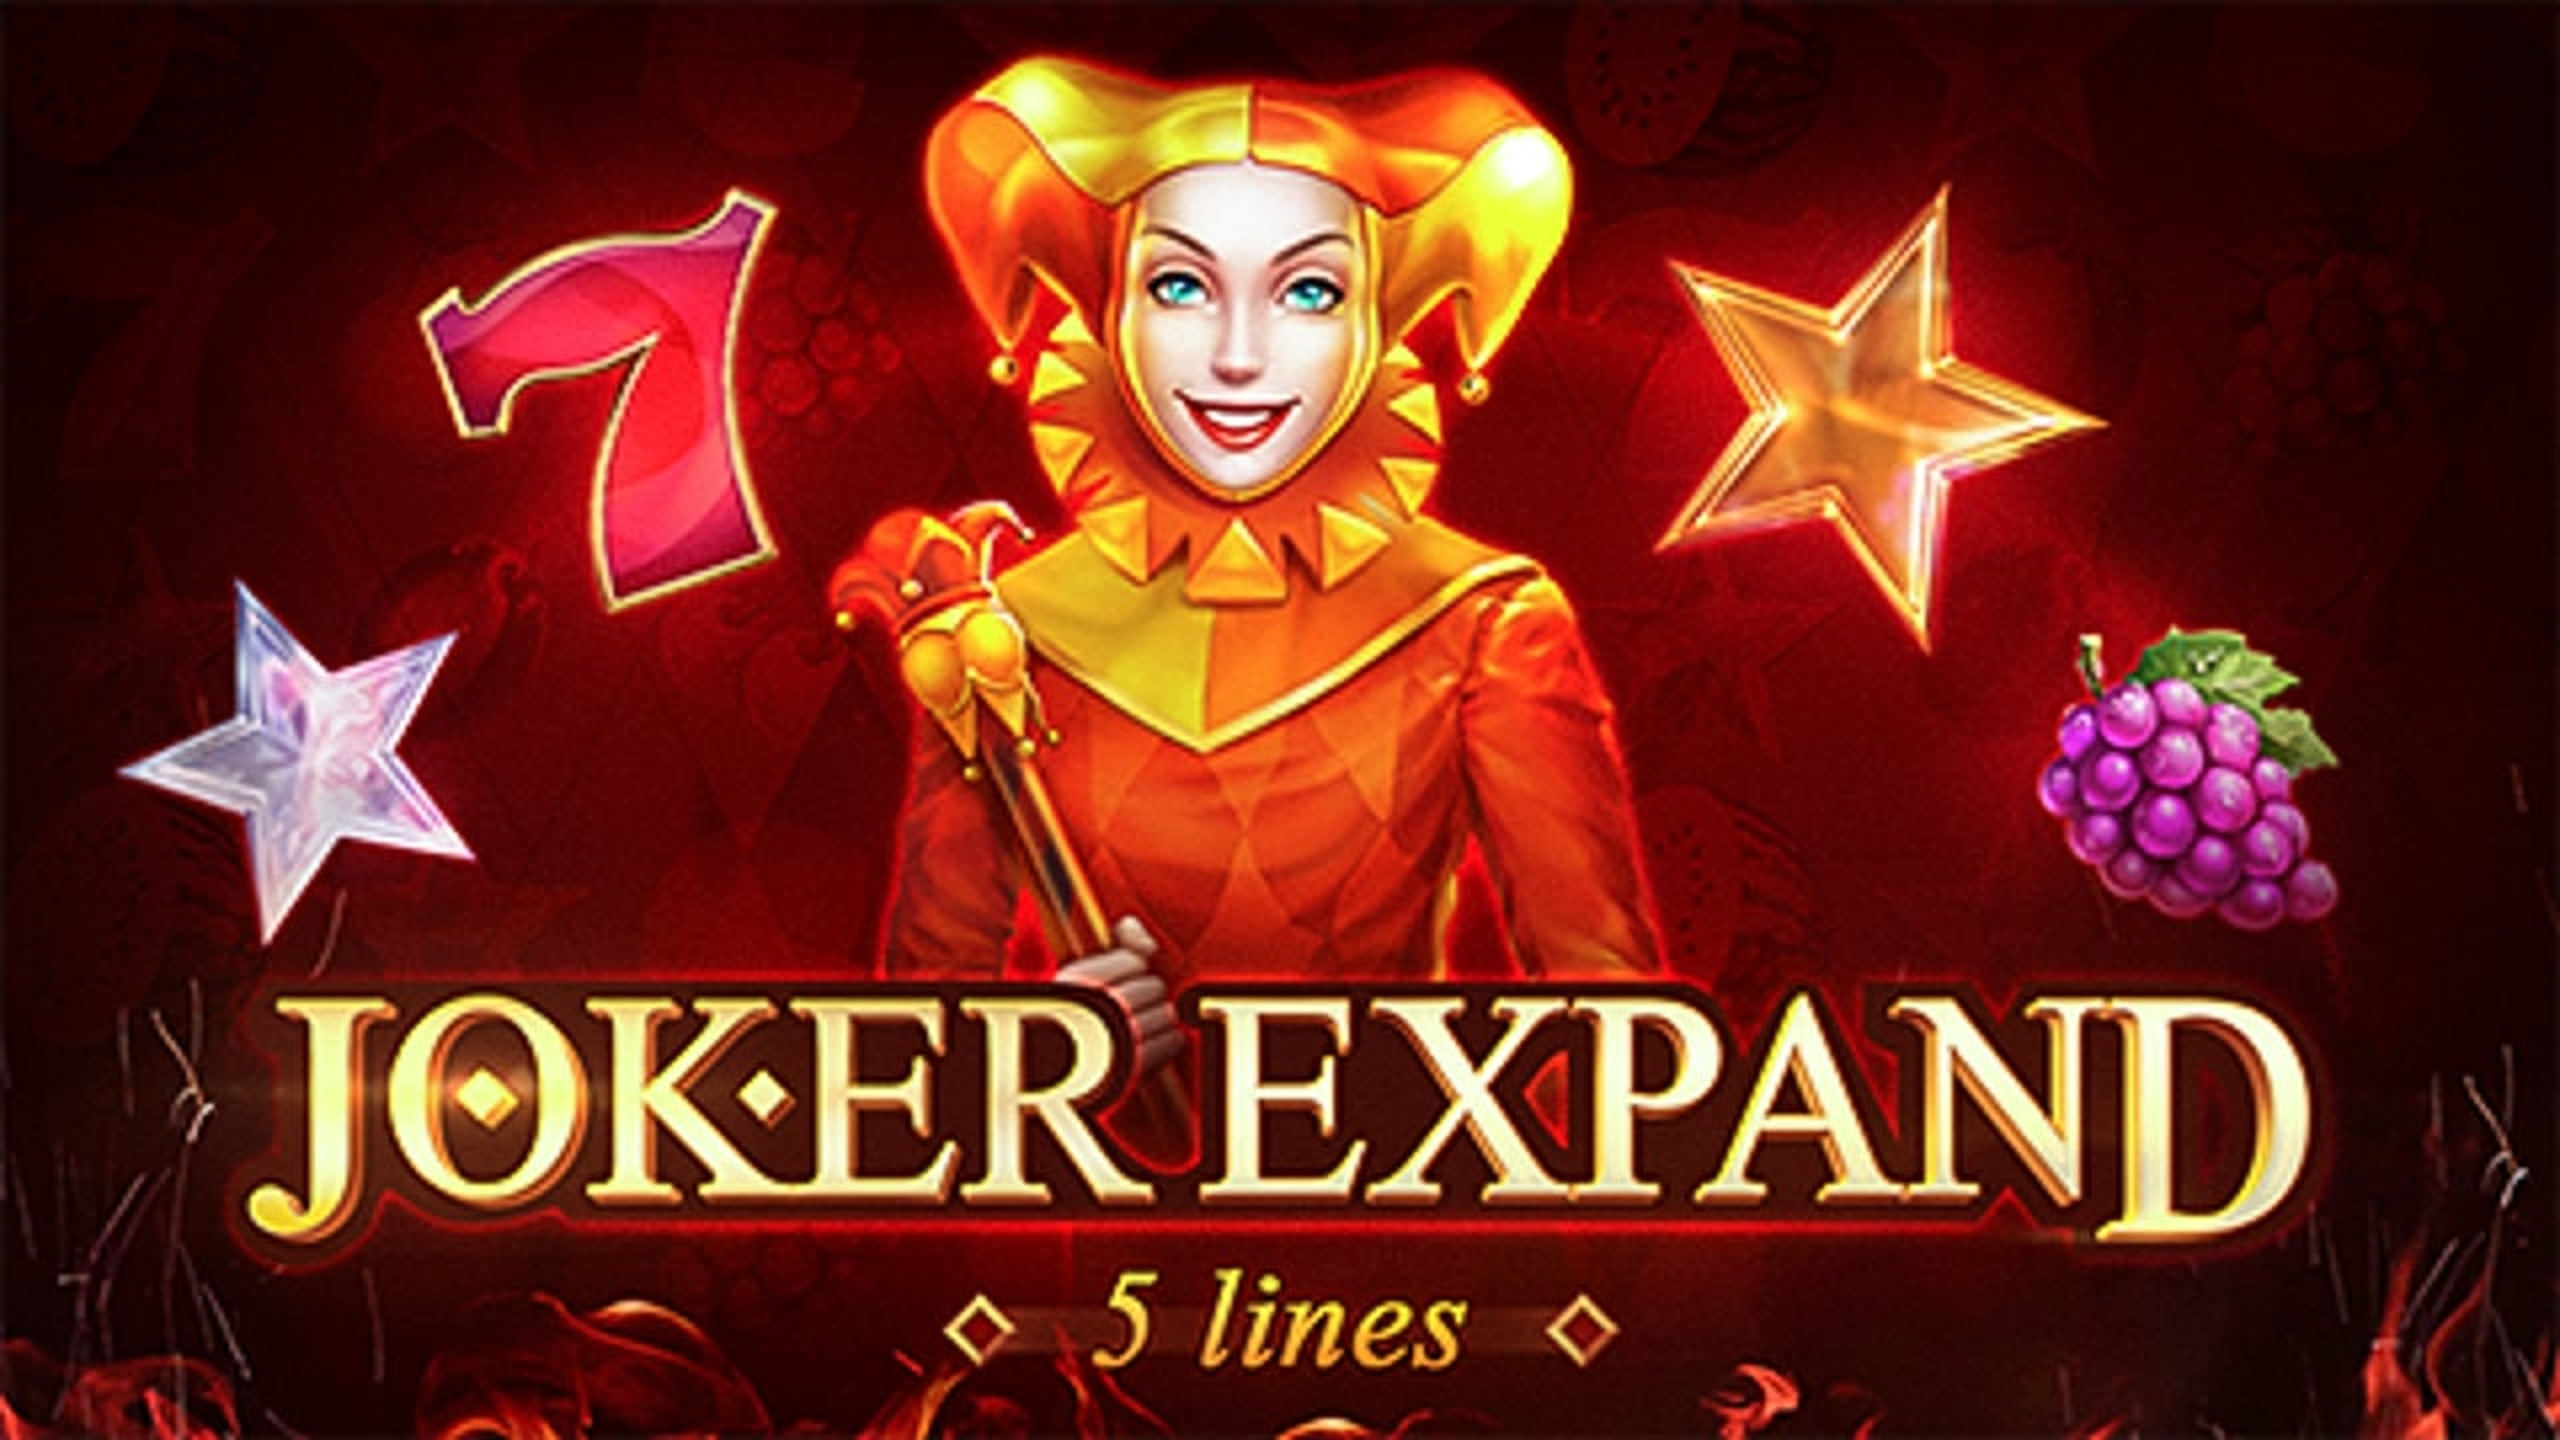 The Joker Expand: 5 lines Online Slot Demo Game by Playson